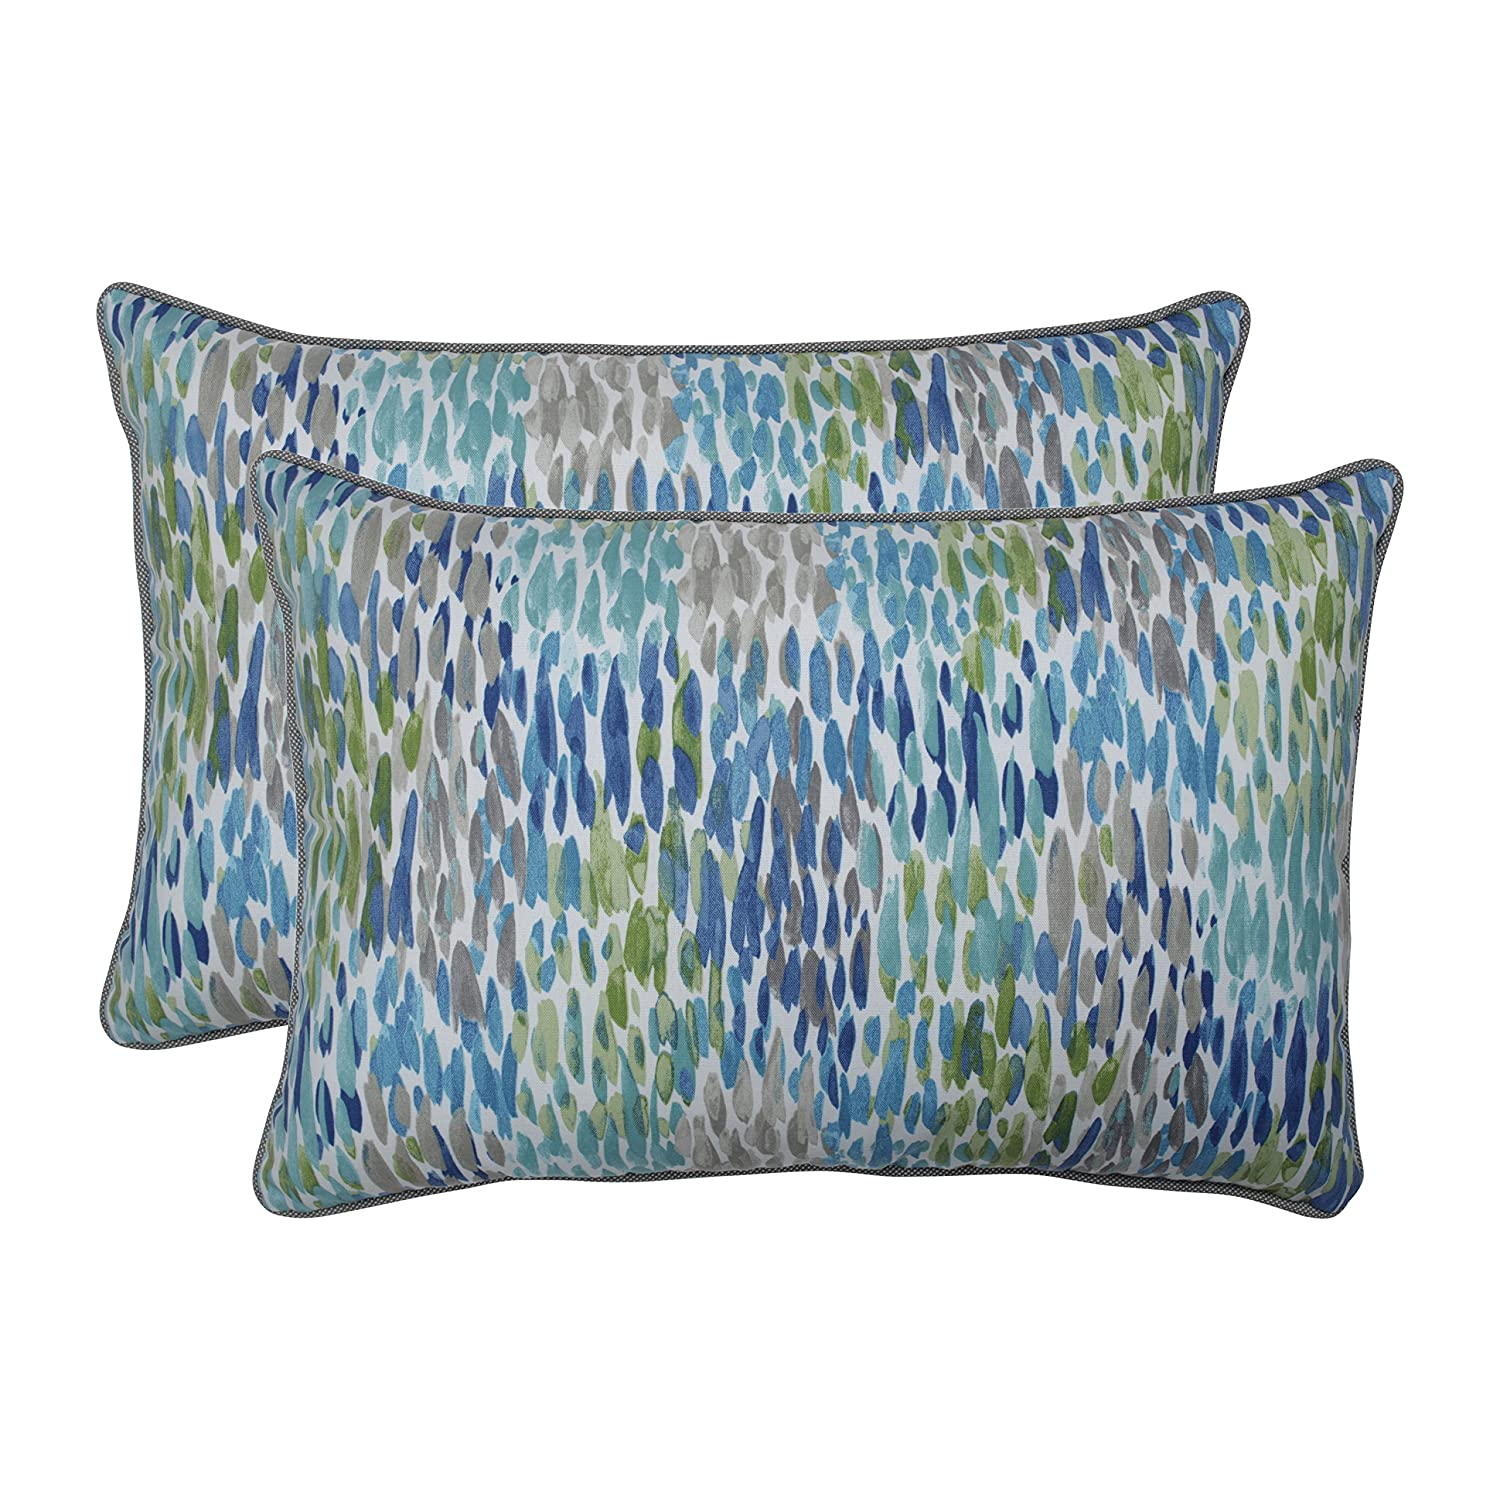 Set of 2 Pillow Perfect Outdoor Blue Indoor Make It Rain Cerulean Over-sized Rectangular Throw Pillow